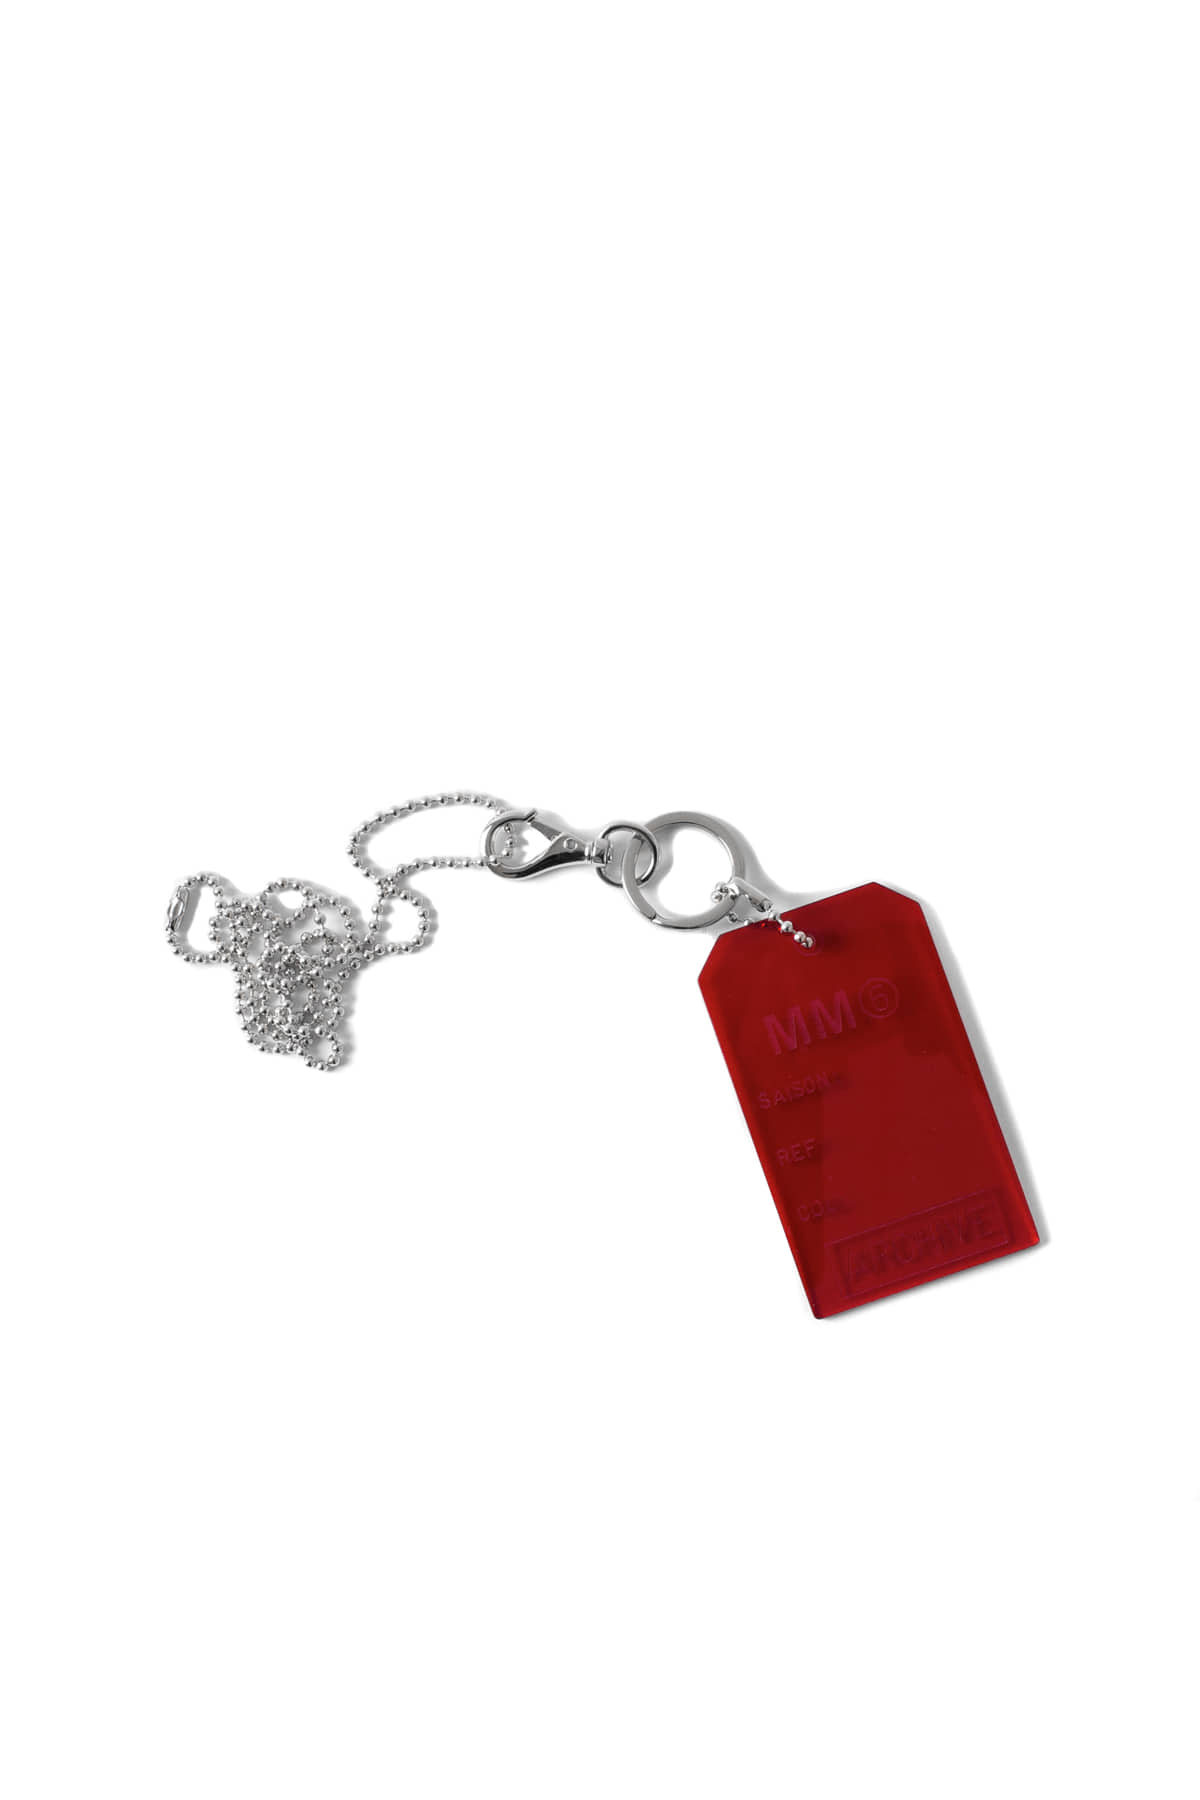 MM6 Maison Margiela : Red Logo Necklace (Red)